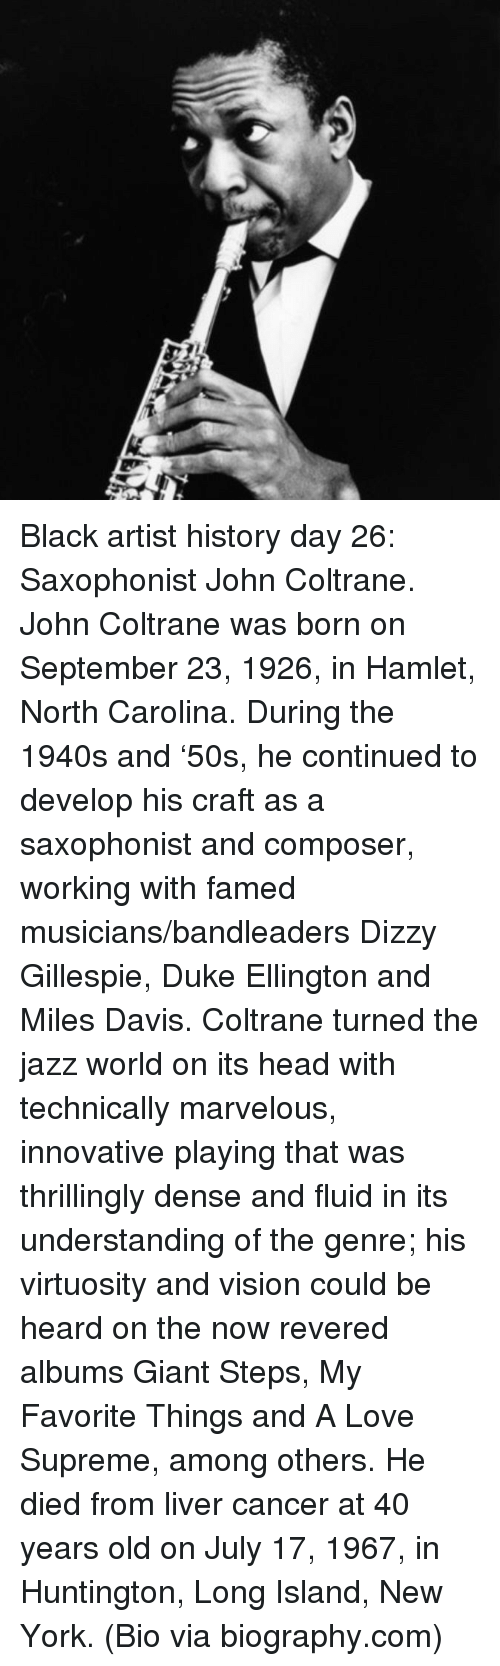 Hamlet, Head, and Love: <p>Black artist history day 26: Saxophonist John Coltrane.</p>  <p>John Coltrane was born on September 23, 1926, in Hamlet, North Carolina. During the 1940s and &lsquo;50s, he continued to develop his craft as a saxophonist and composer, working with famed musicians/bandleaders Dizzy Gillespie, Duke Ellington and Miles Davis. Coltrane turned the jazz world on its head with technically marvelous, innovative playing that was thrillingly dense and fluid in its understanding of the genre; his virtuosity and vision could be heard on the now revered albums Giant Steps, My Favorite Things and A Love Supreme, among others. He died from liver cancer at 40 years old on July 17, 1967, in Huntington, Long Island, New York. (Bio via biography.com)</p>